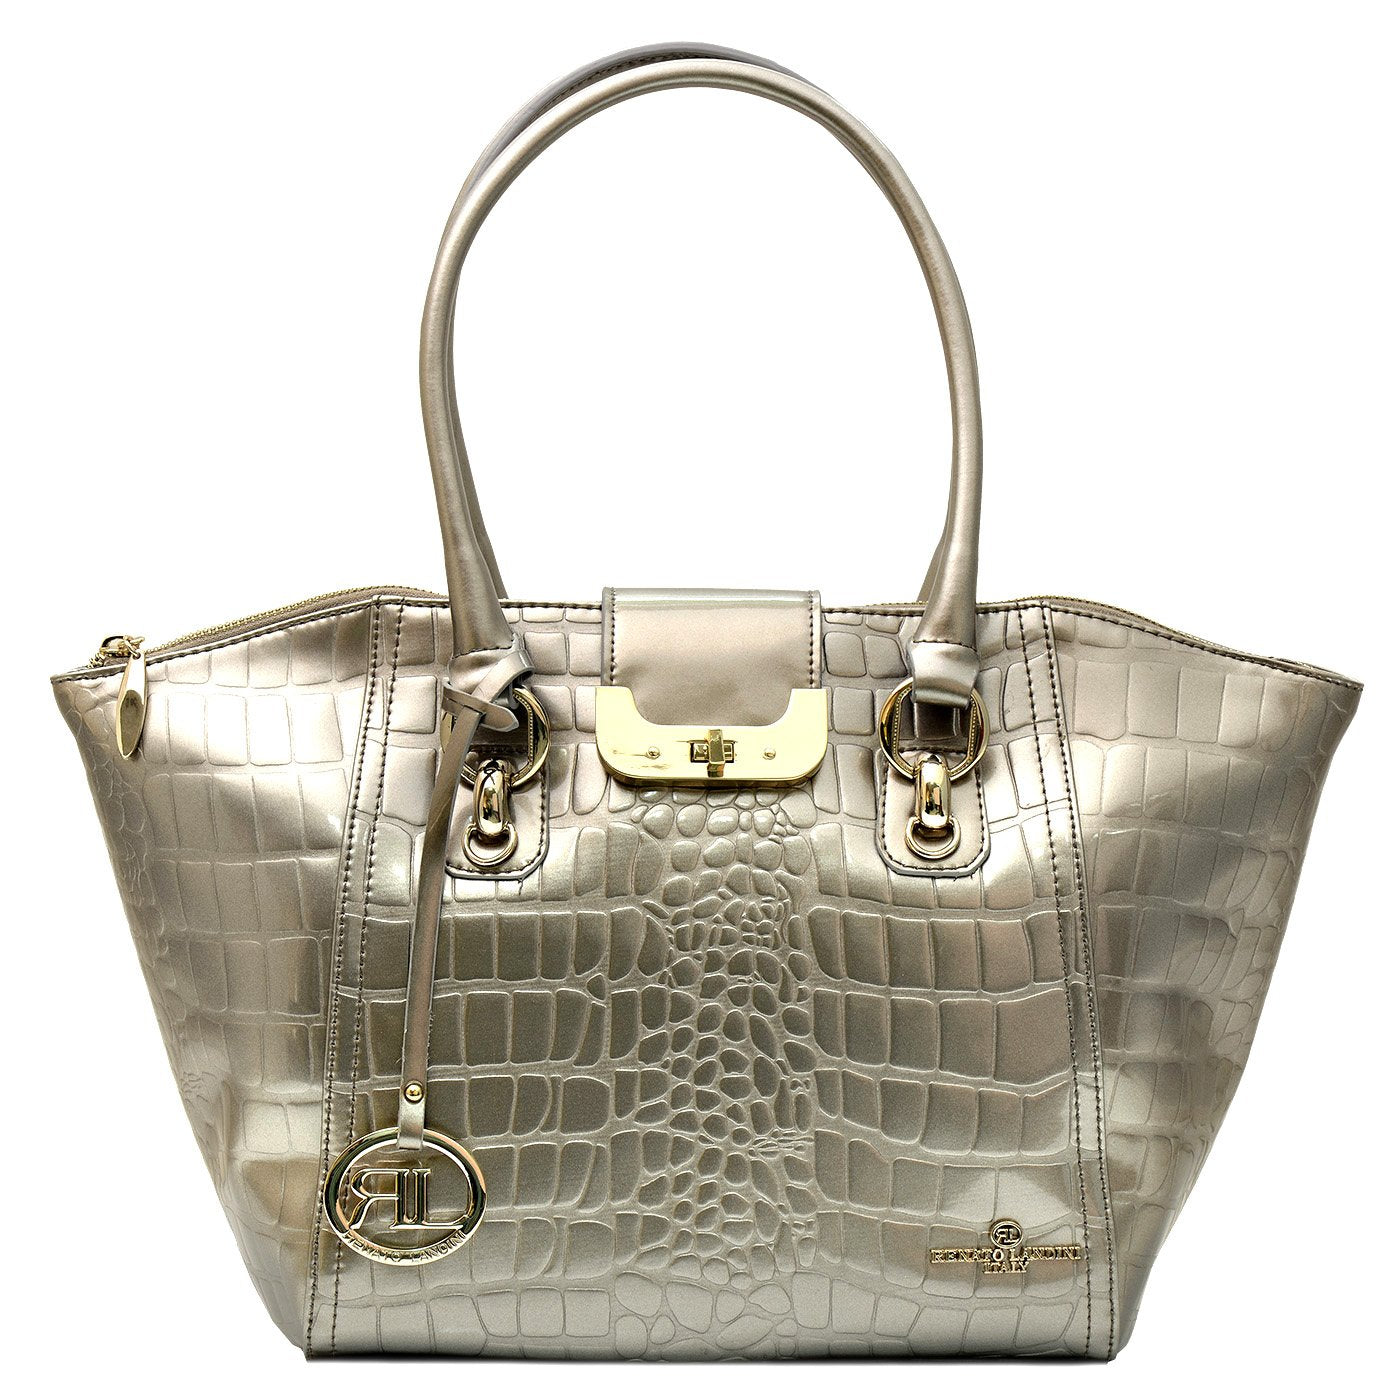 RENATO LANDINI Lady's Bag Light Gold/ Champagne